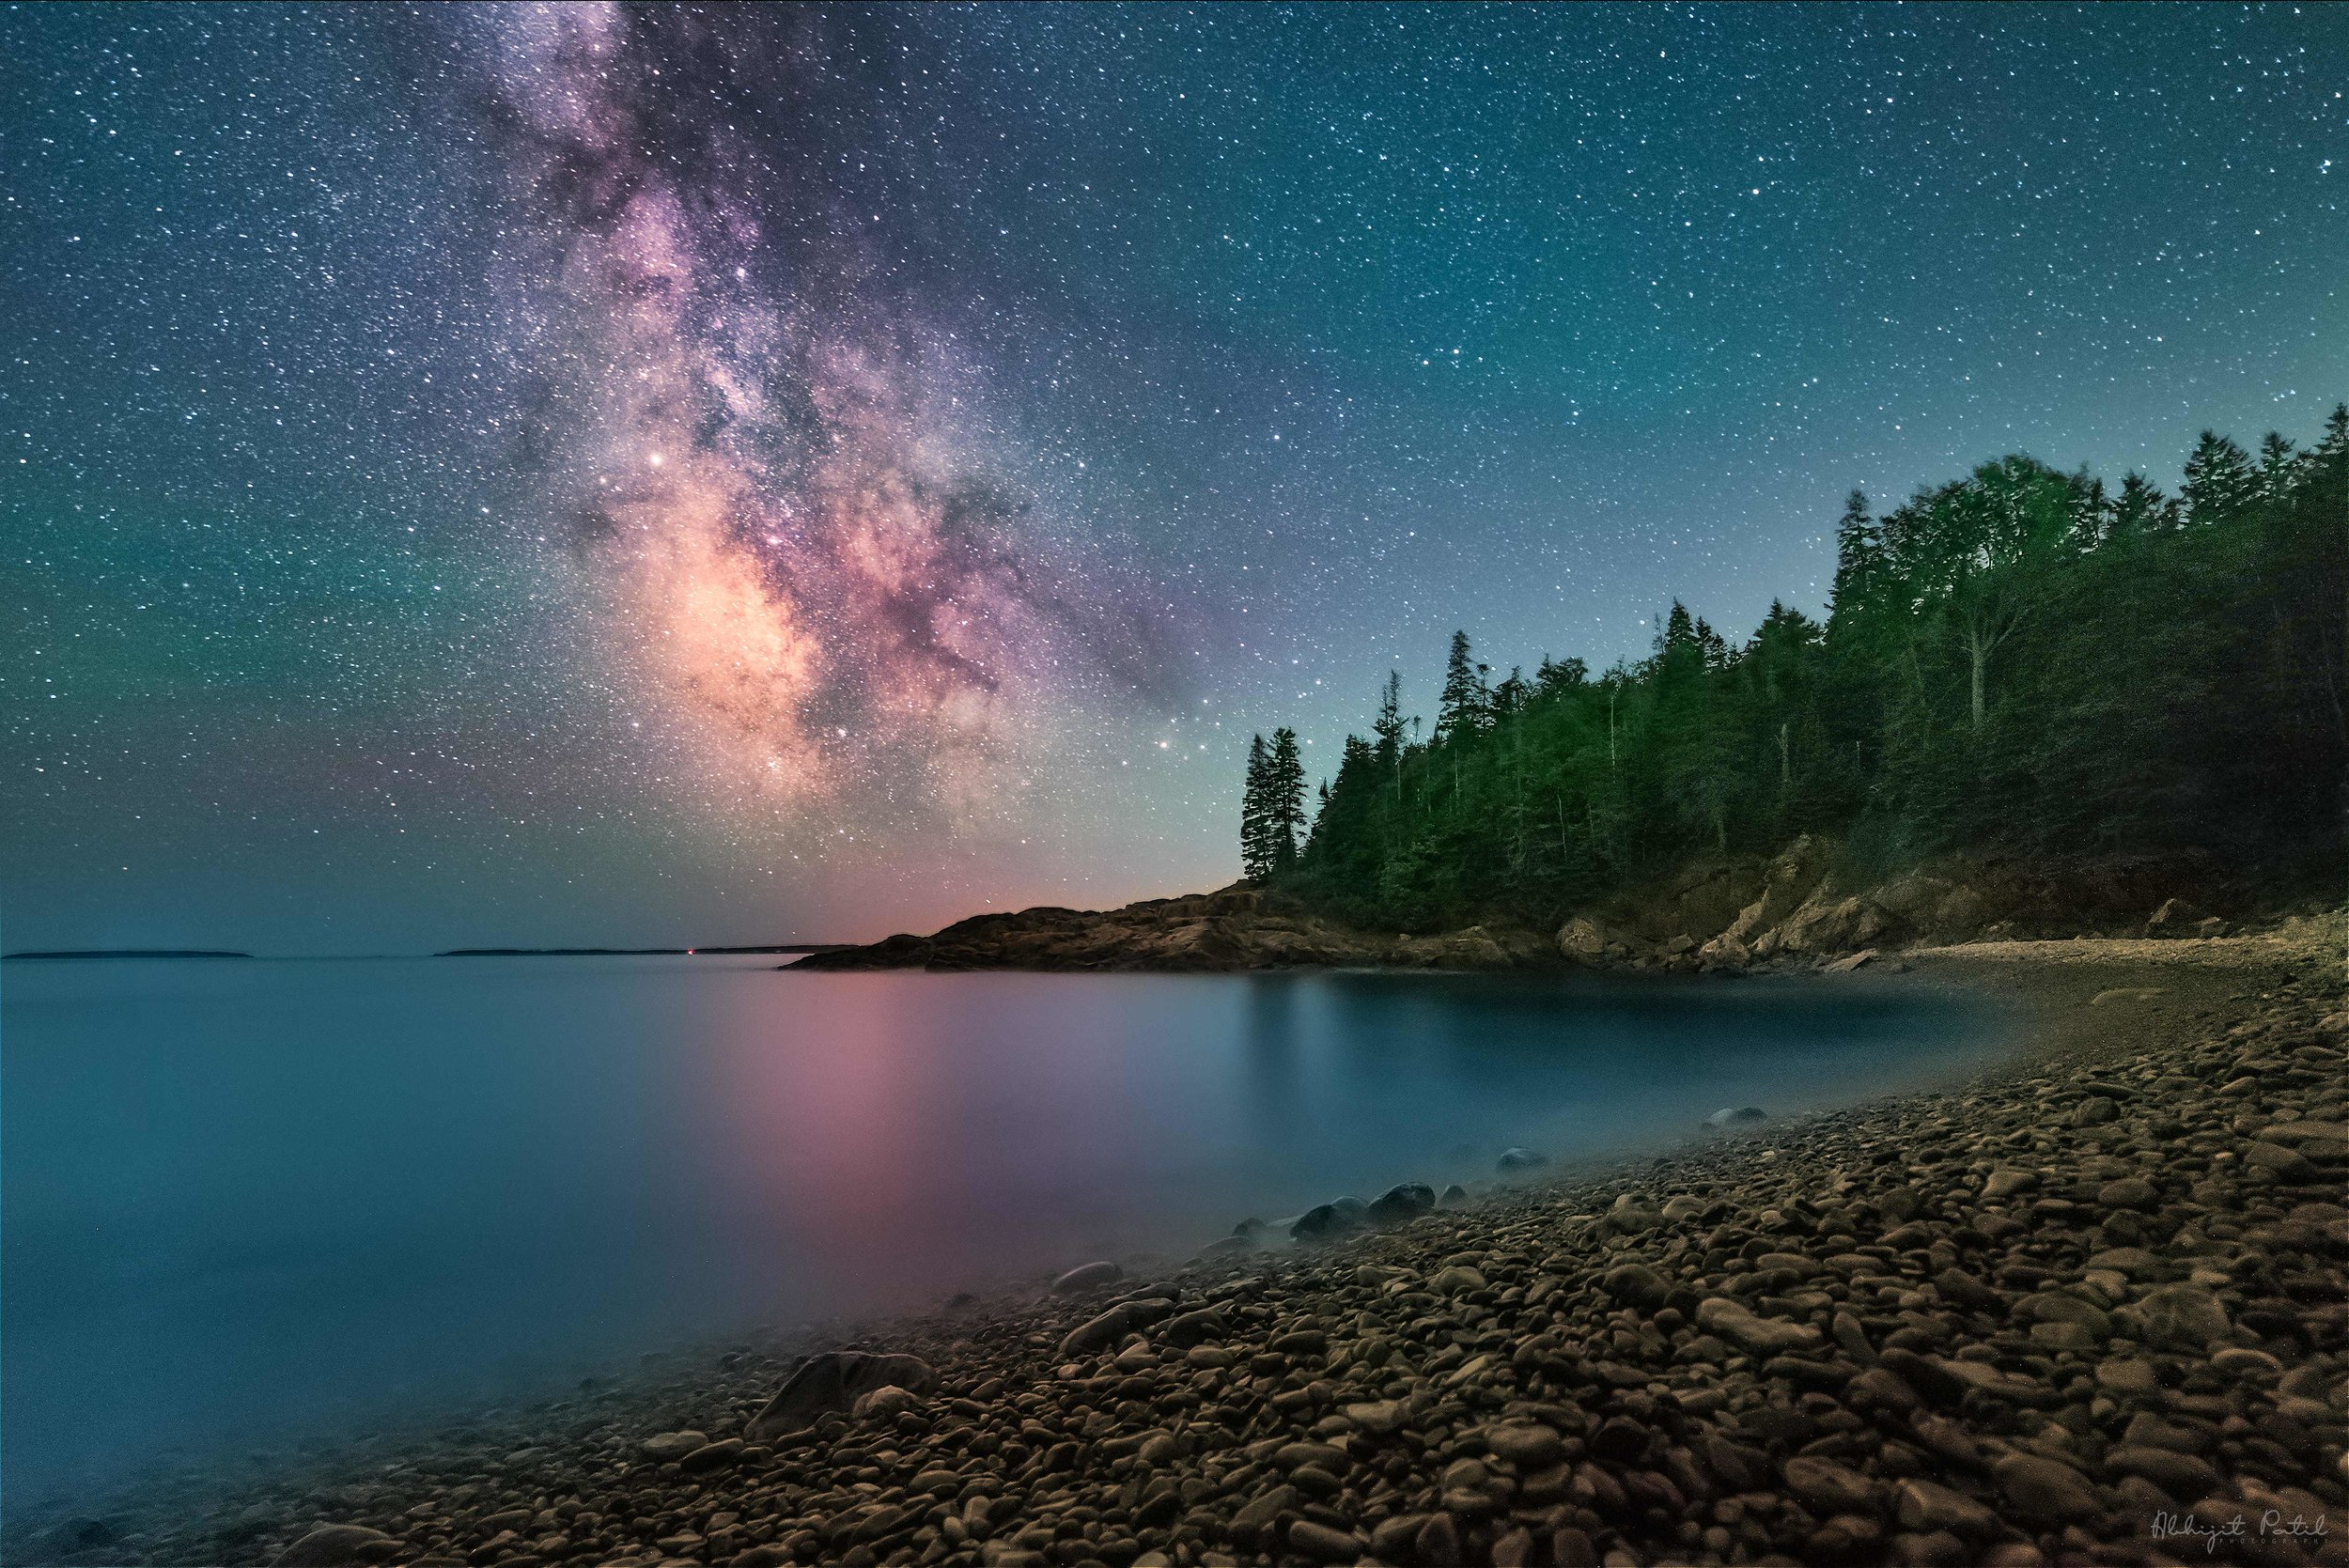 The Instagrammer's Guide to Fabulous National Parks - Featured Night sky image from Acadia National Park's coastline.